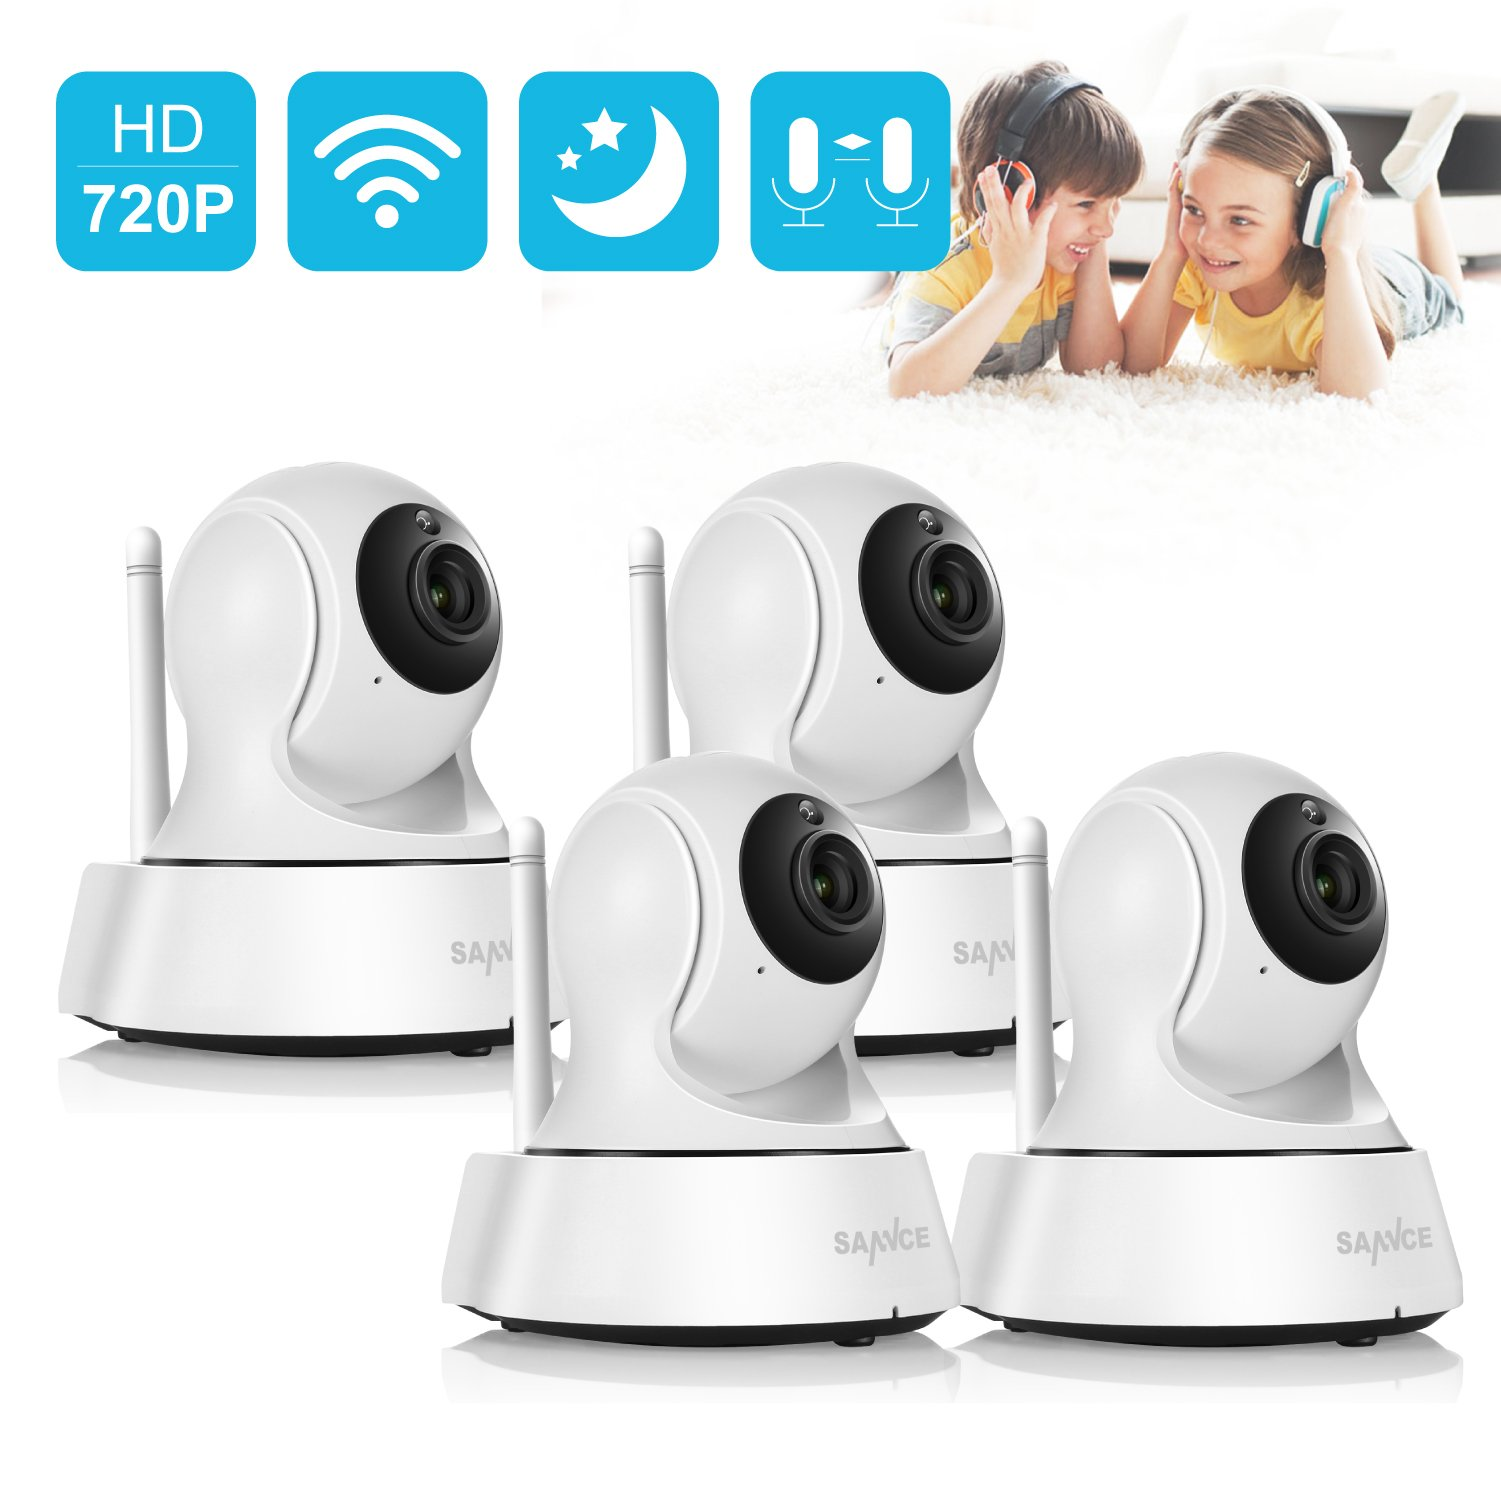 SANNCE HD Pan/Tilt Wireless WiFi IP Camera, 720P Security Camera with Two Way Audio, Night Vision/Memory Card Slot/Plug/Play for Baby/Elder/Pet/Nanny/Garage/Office Monitor(4 Pack, Black) by SANNCE